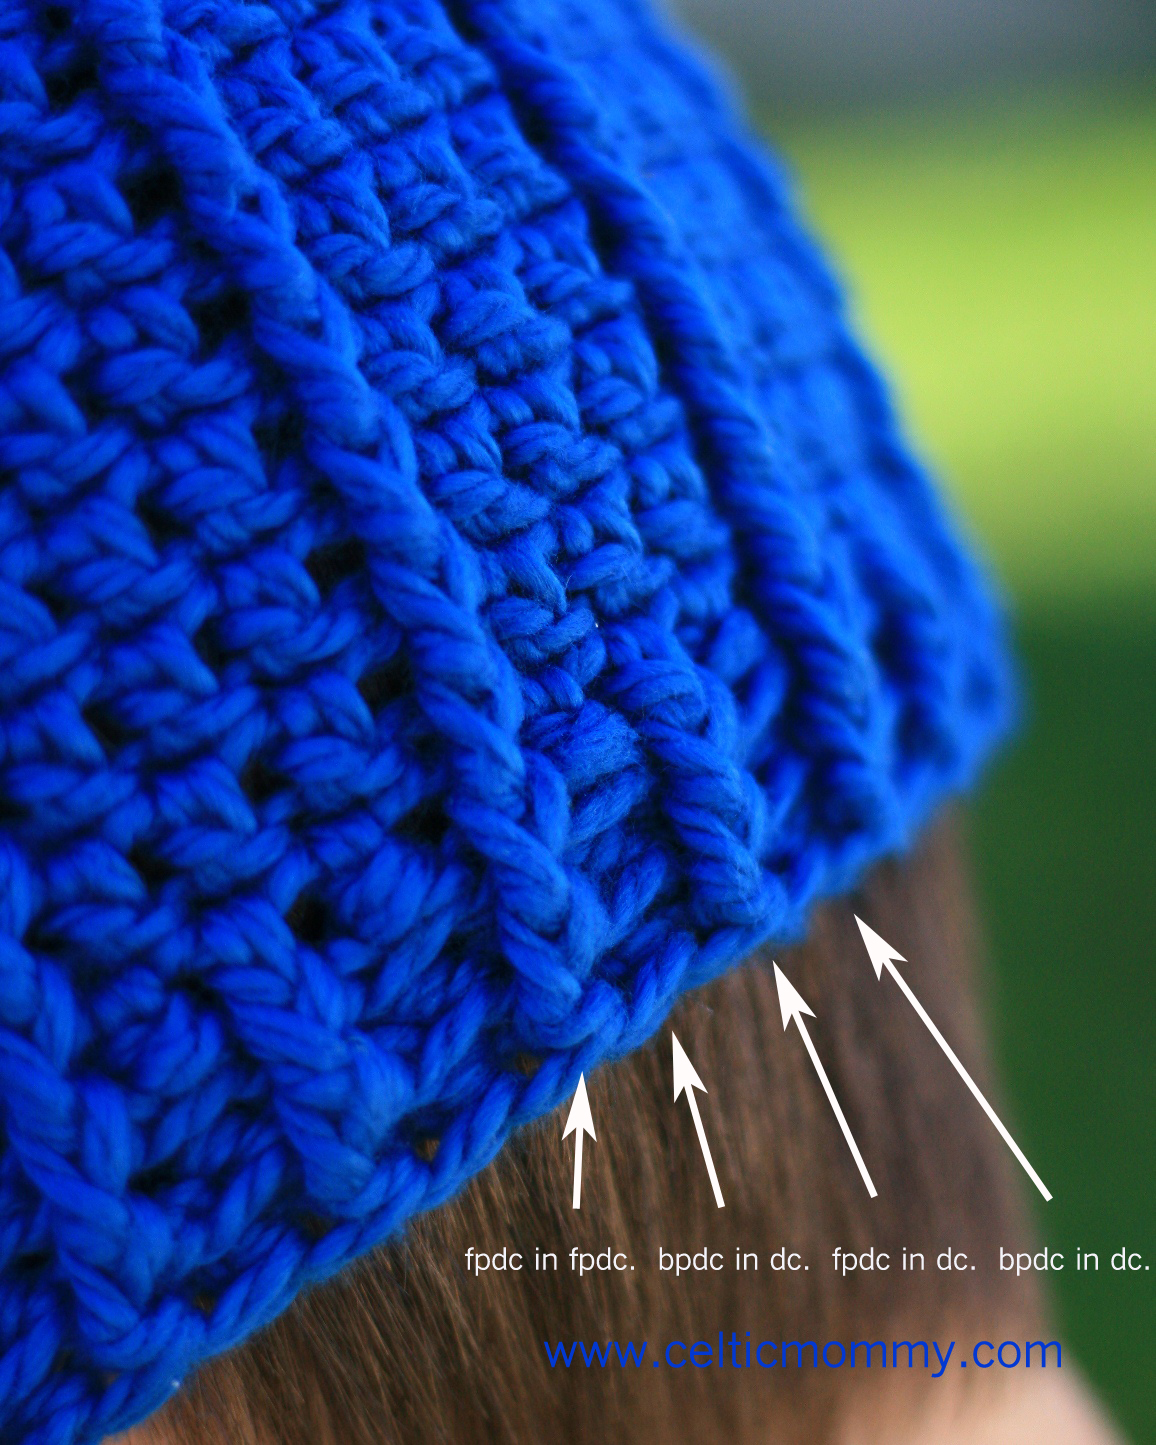 CelticMommy: Free Crochet Pattern: Rib Wrapped Cap For